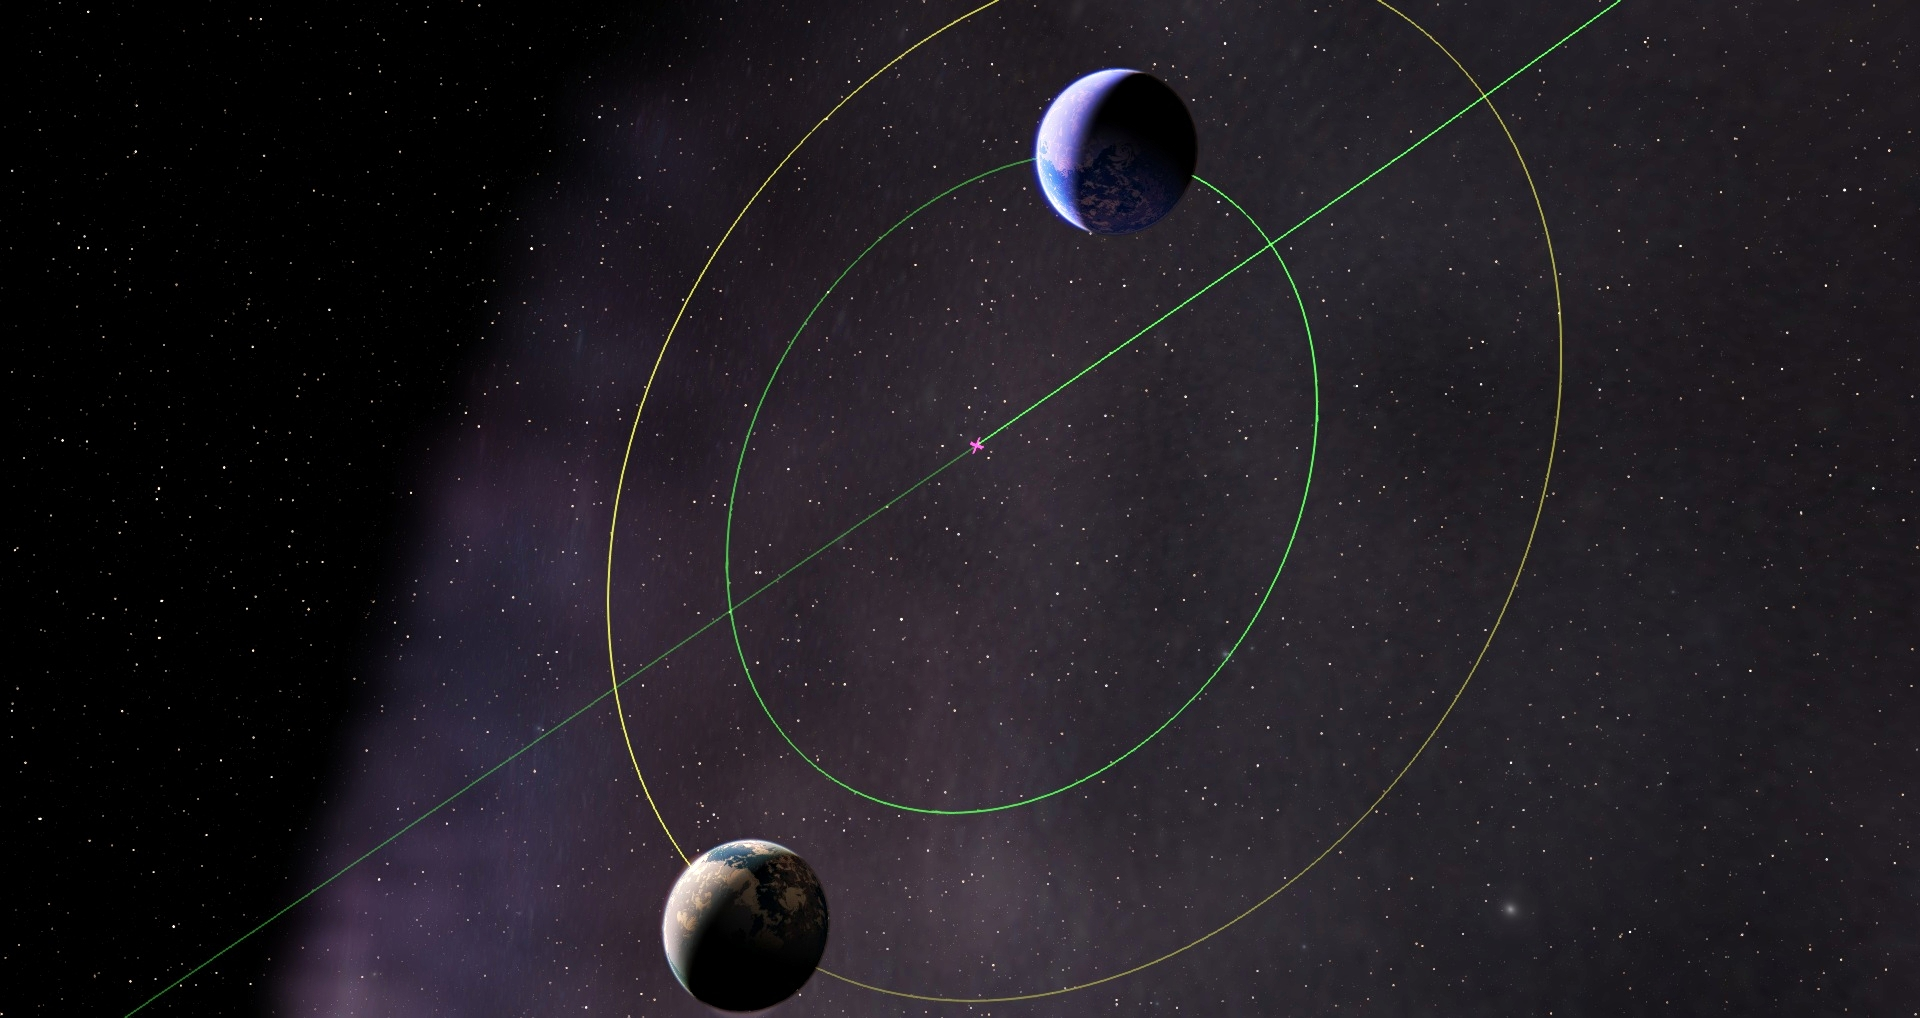 What if there were two earths (or earth like planets ...